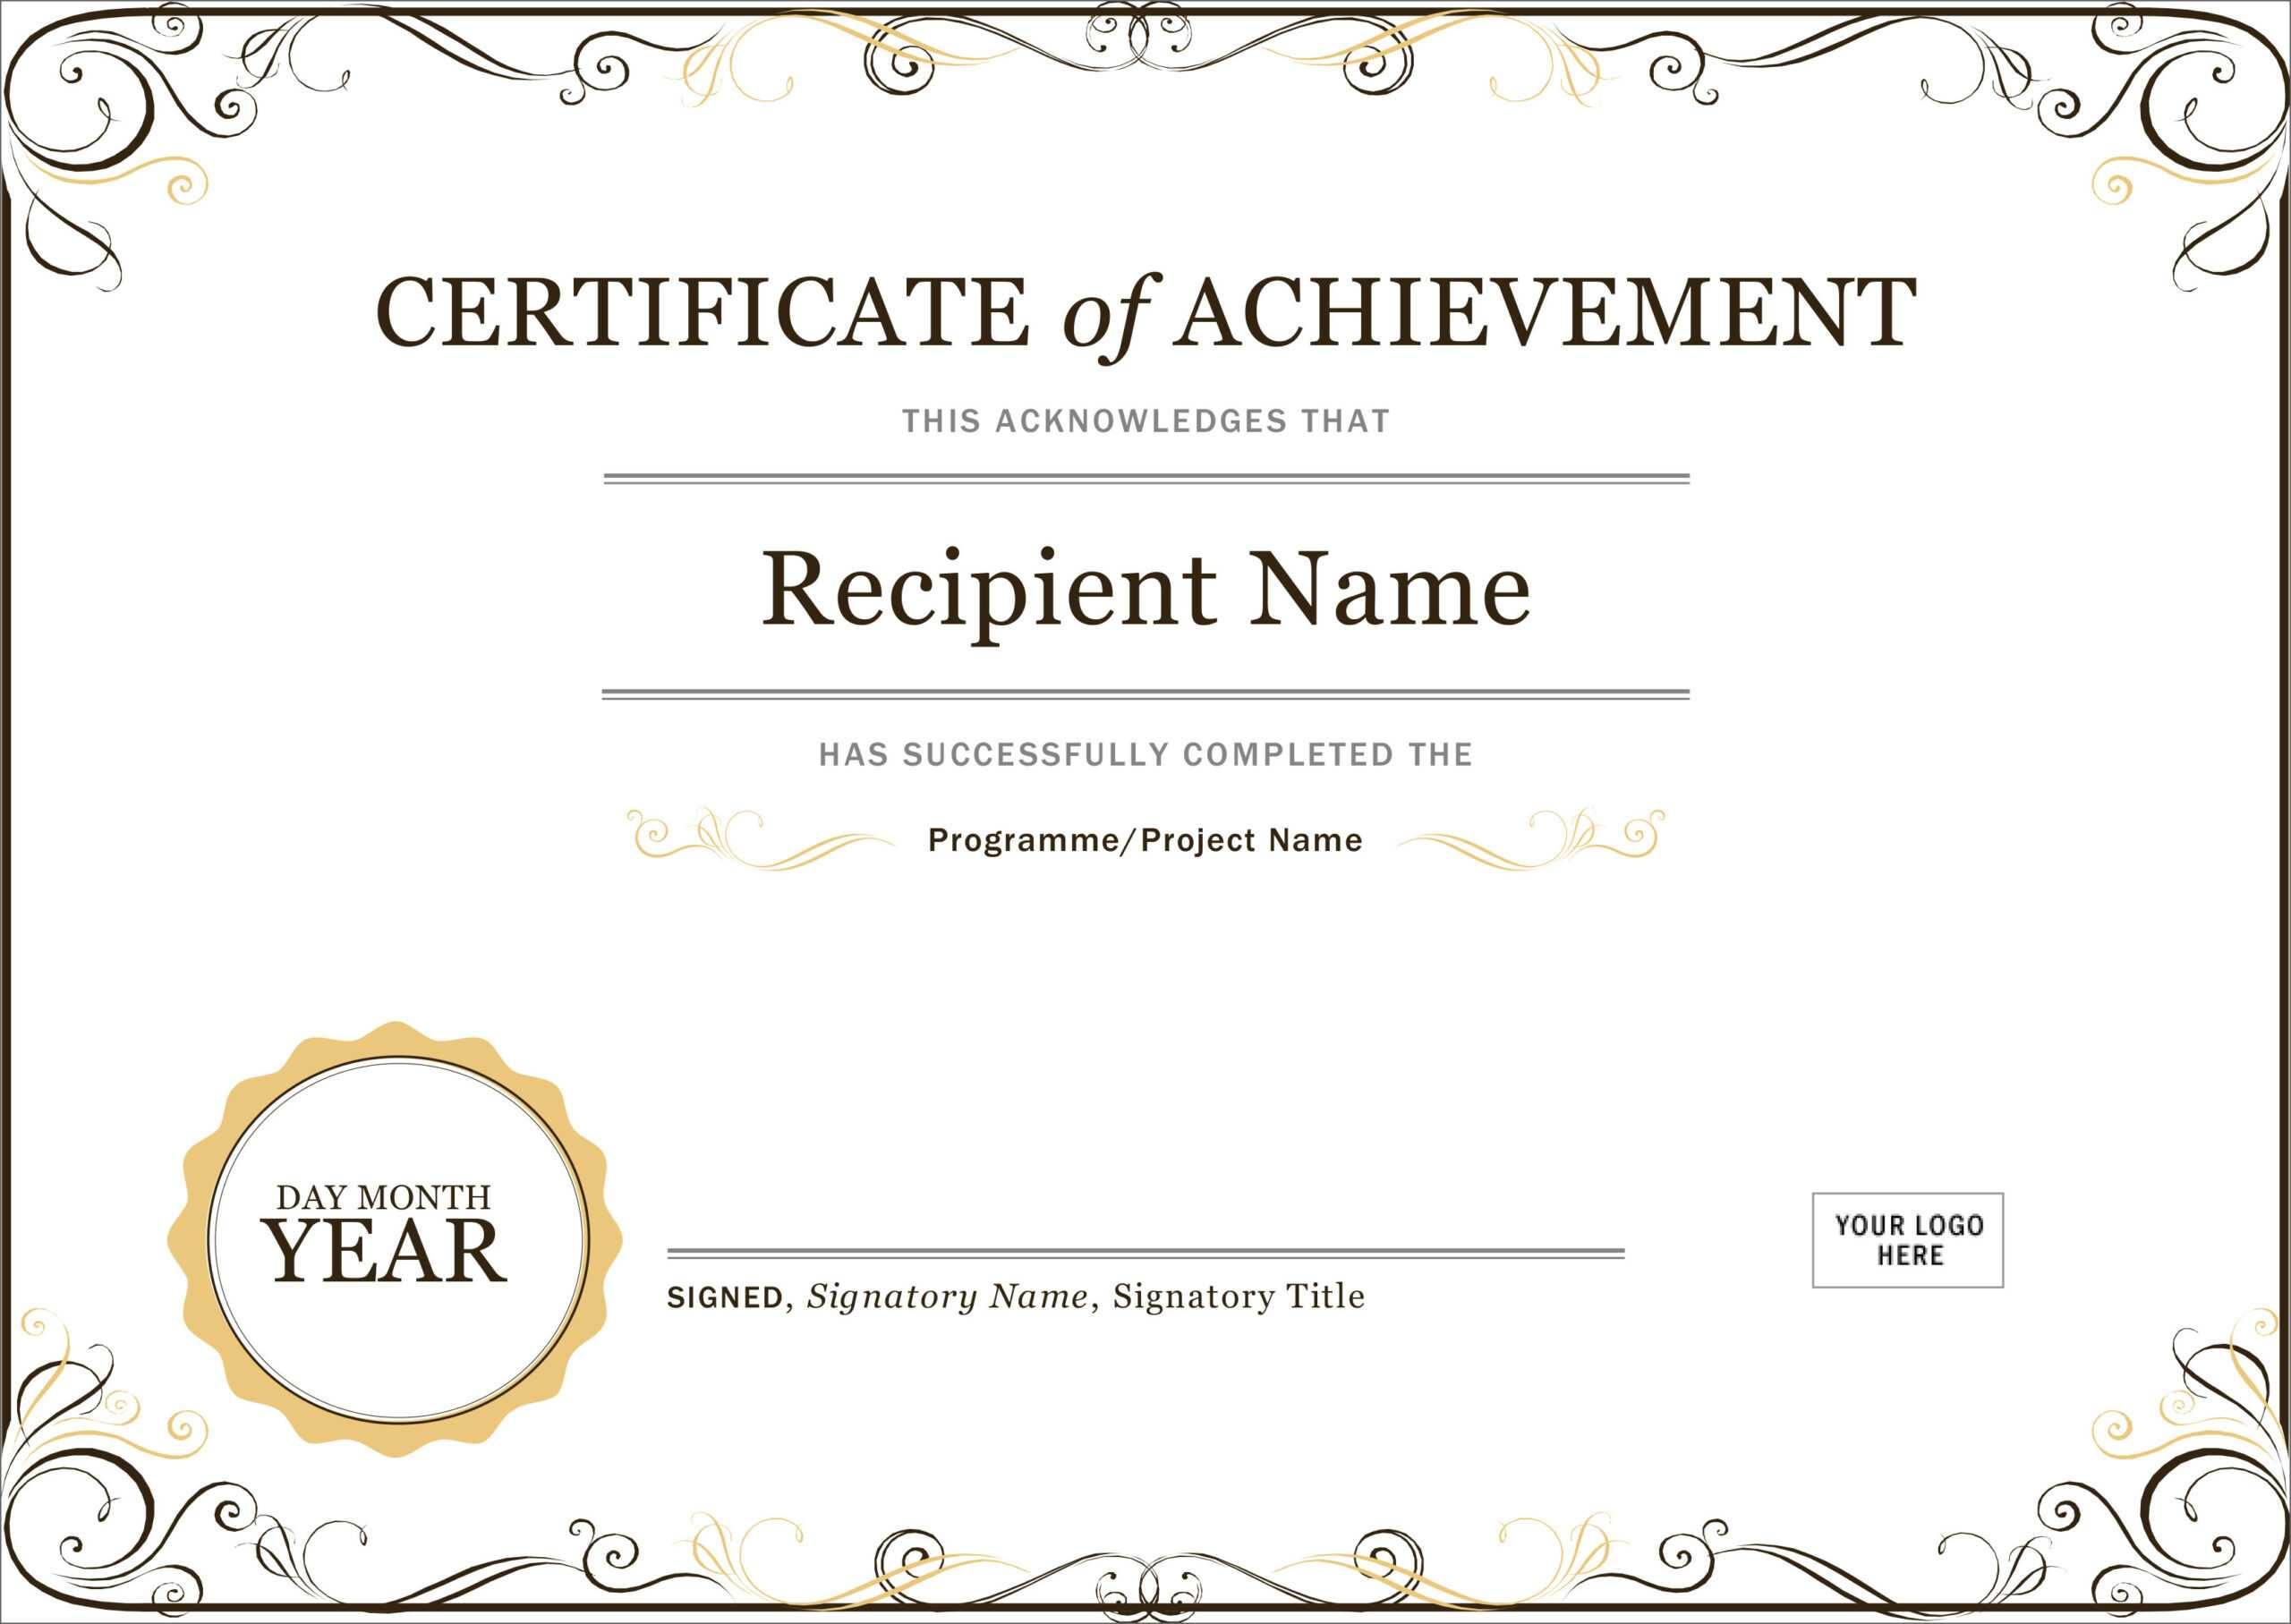 50 Free Creative Blank Certificate Templates In Psd Intended For Student Of The Year Award Certificate Templates